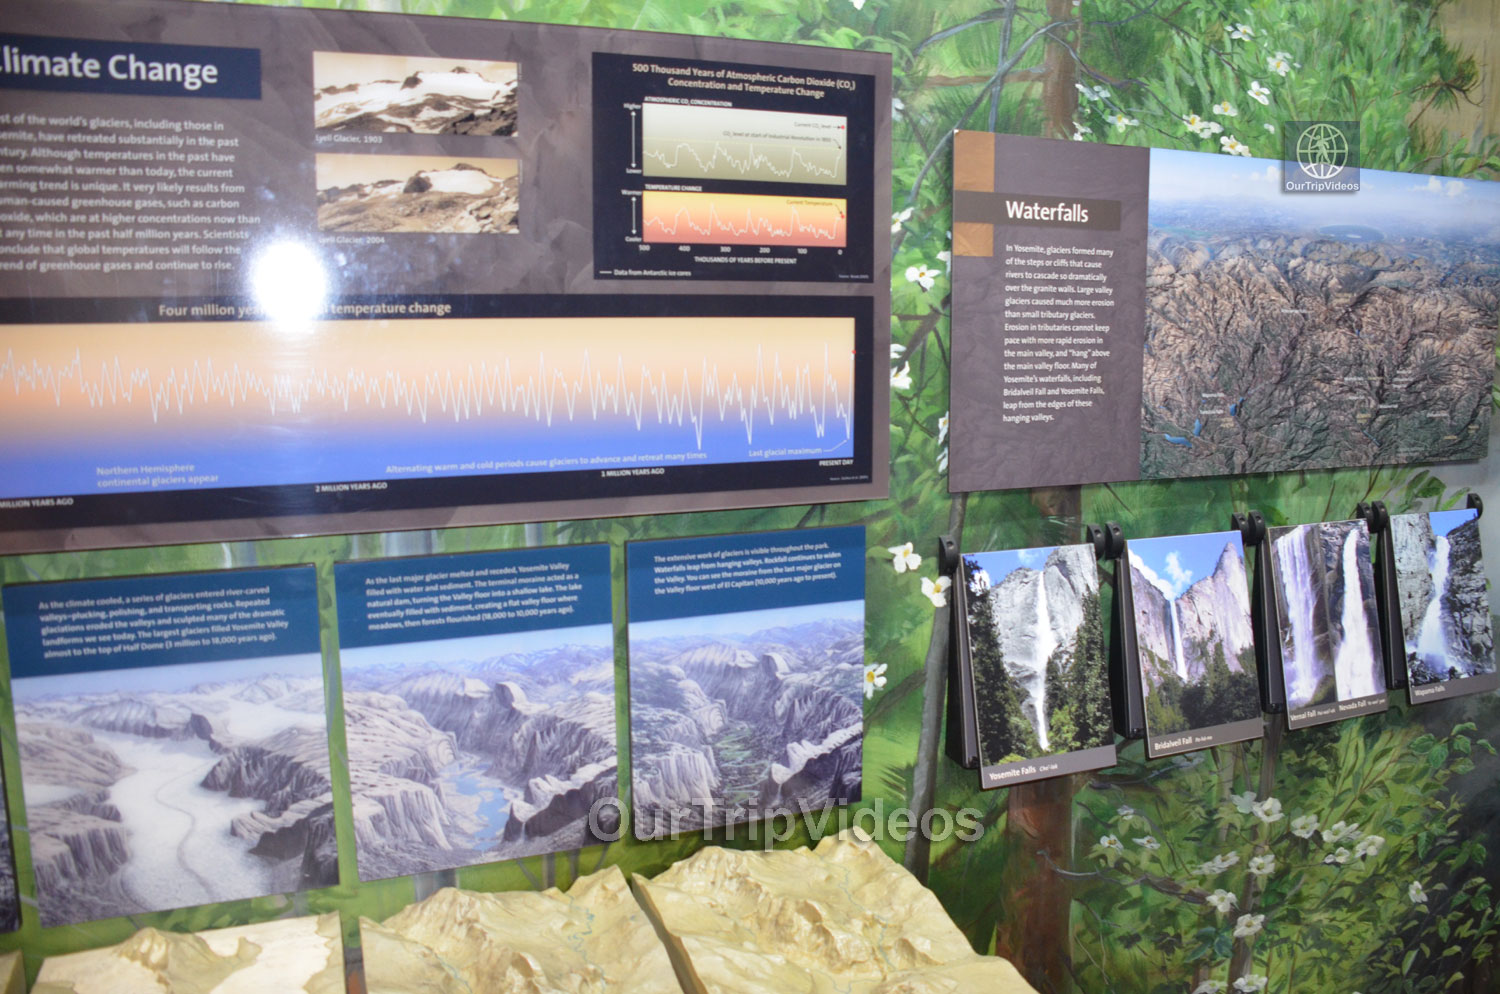 Yosemite National Park - Valley Visitor Center, Yosemite Valley, CA, USA - Picture 19 of 25